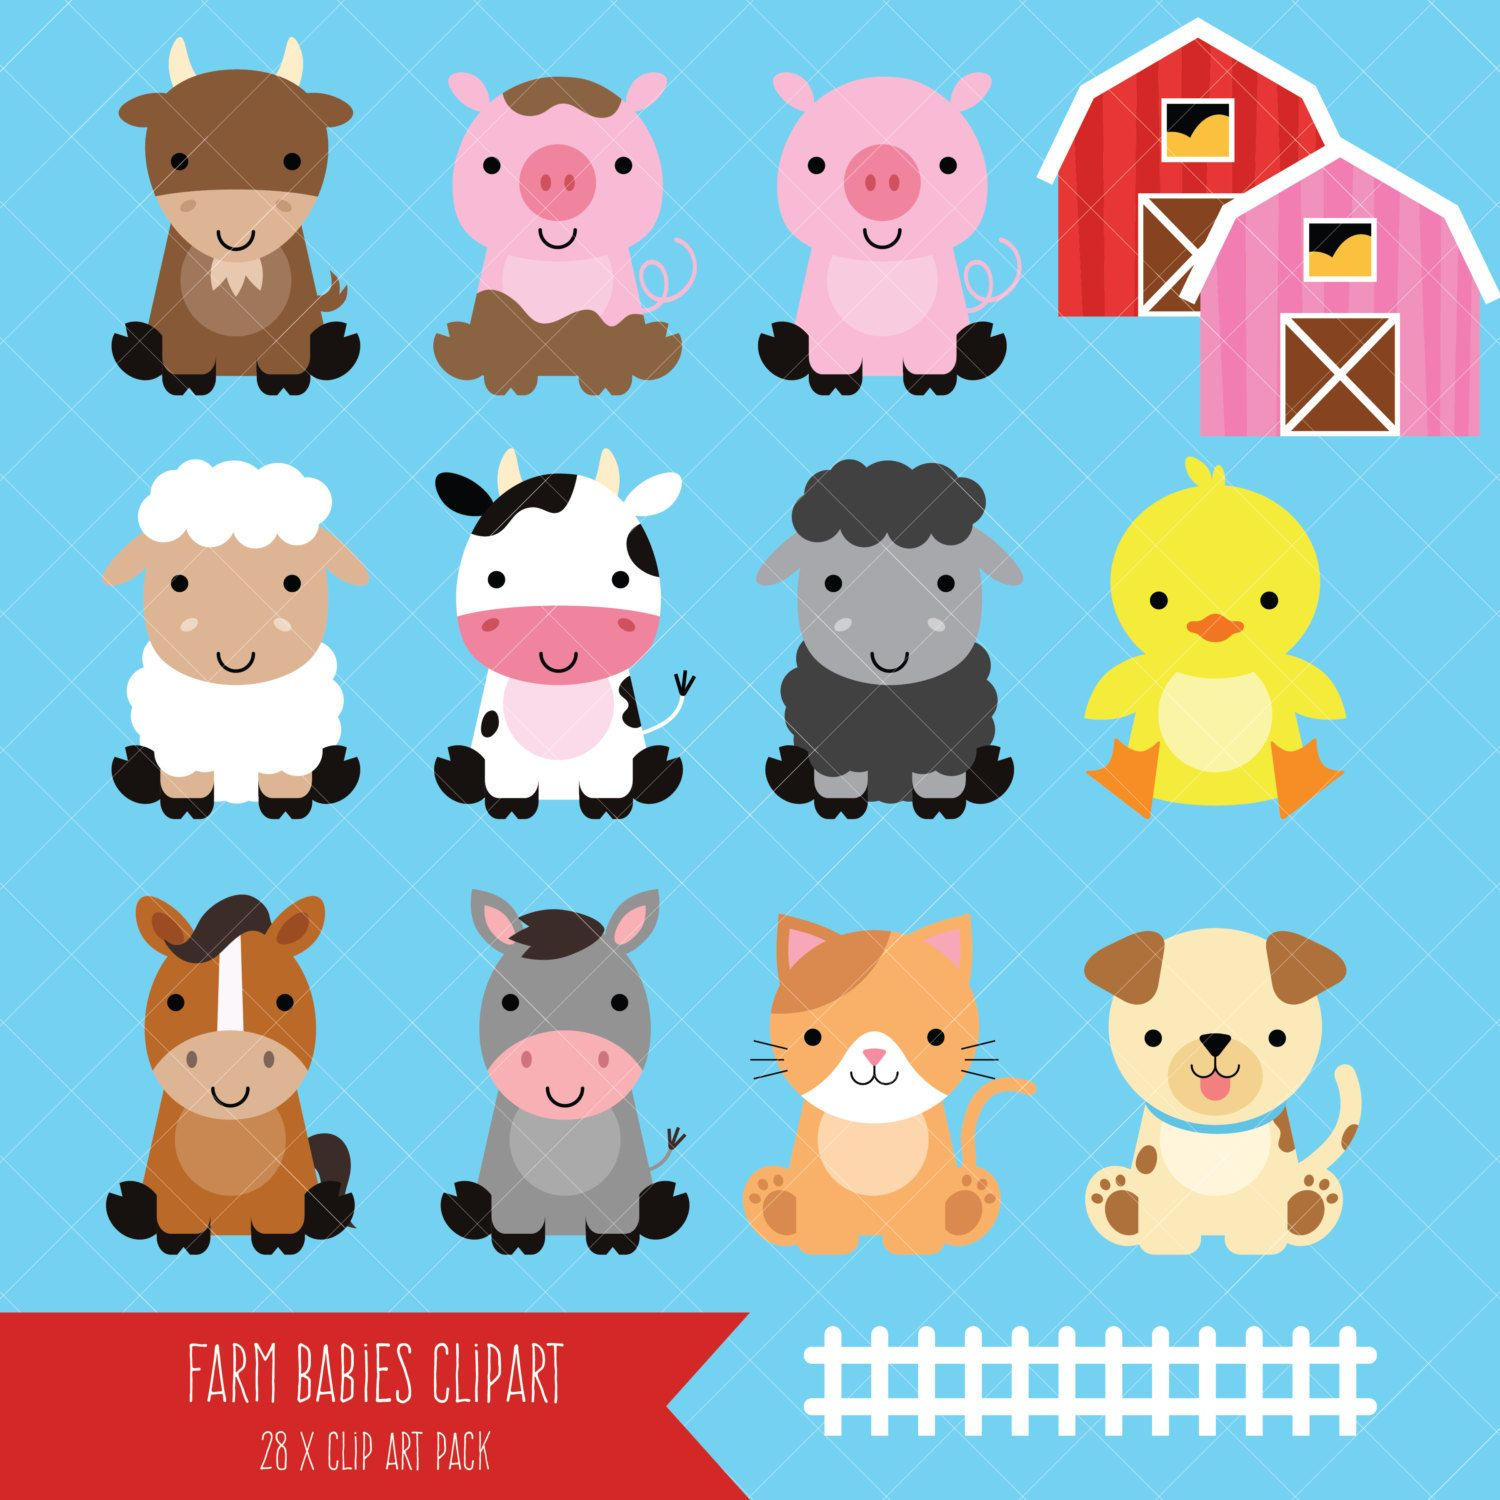 Baby farm clipart graphic library library Farm Baby Animals Clipart / Cute Animal Clipart / Barnyard Animals ... graphic library library